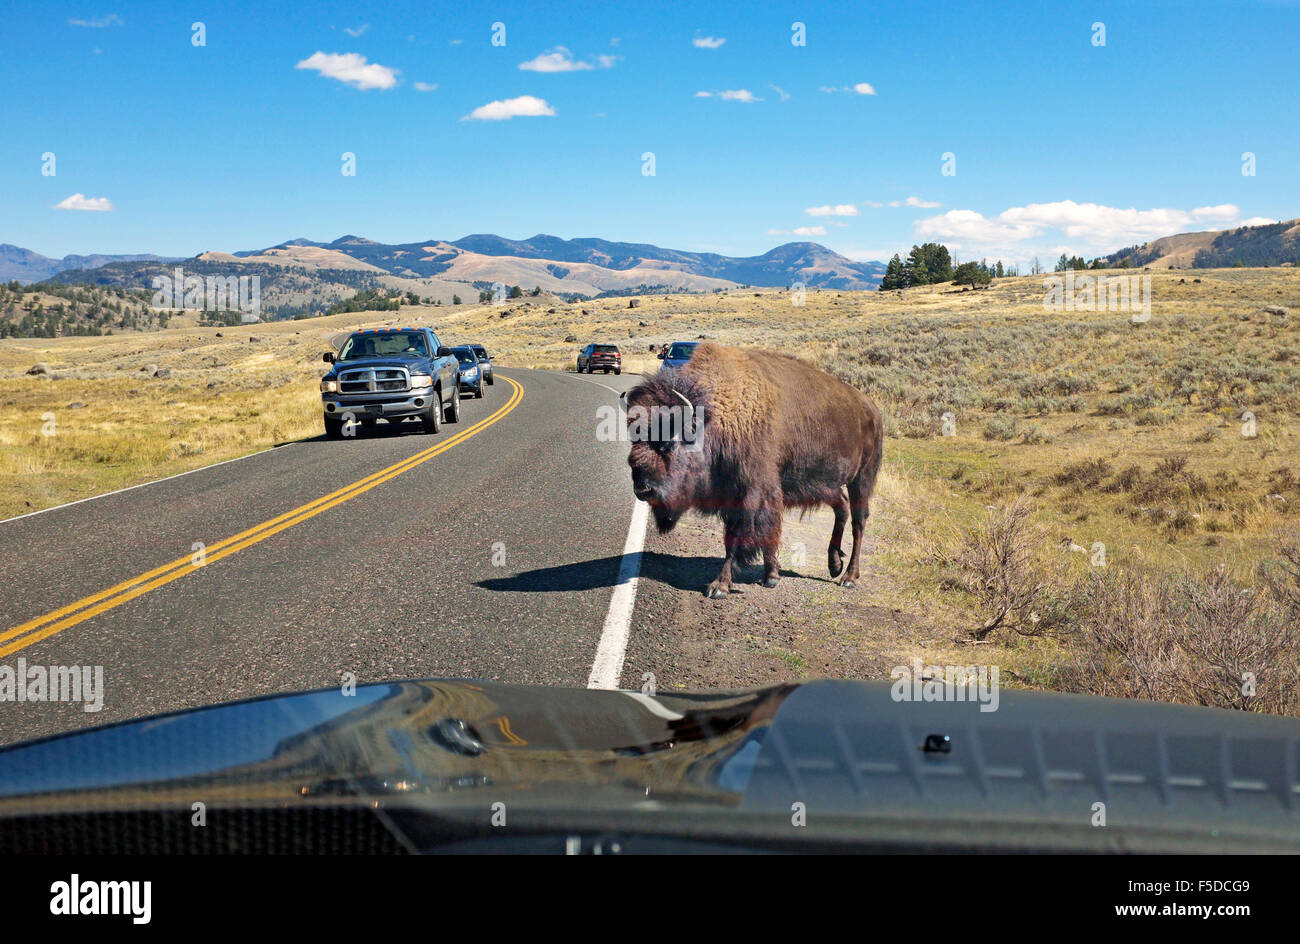 An American bison or buffalo crossing the highway causes a traffic jam in Yellowstone National Park, Wyoming - Stock Image